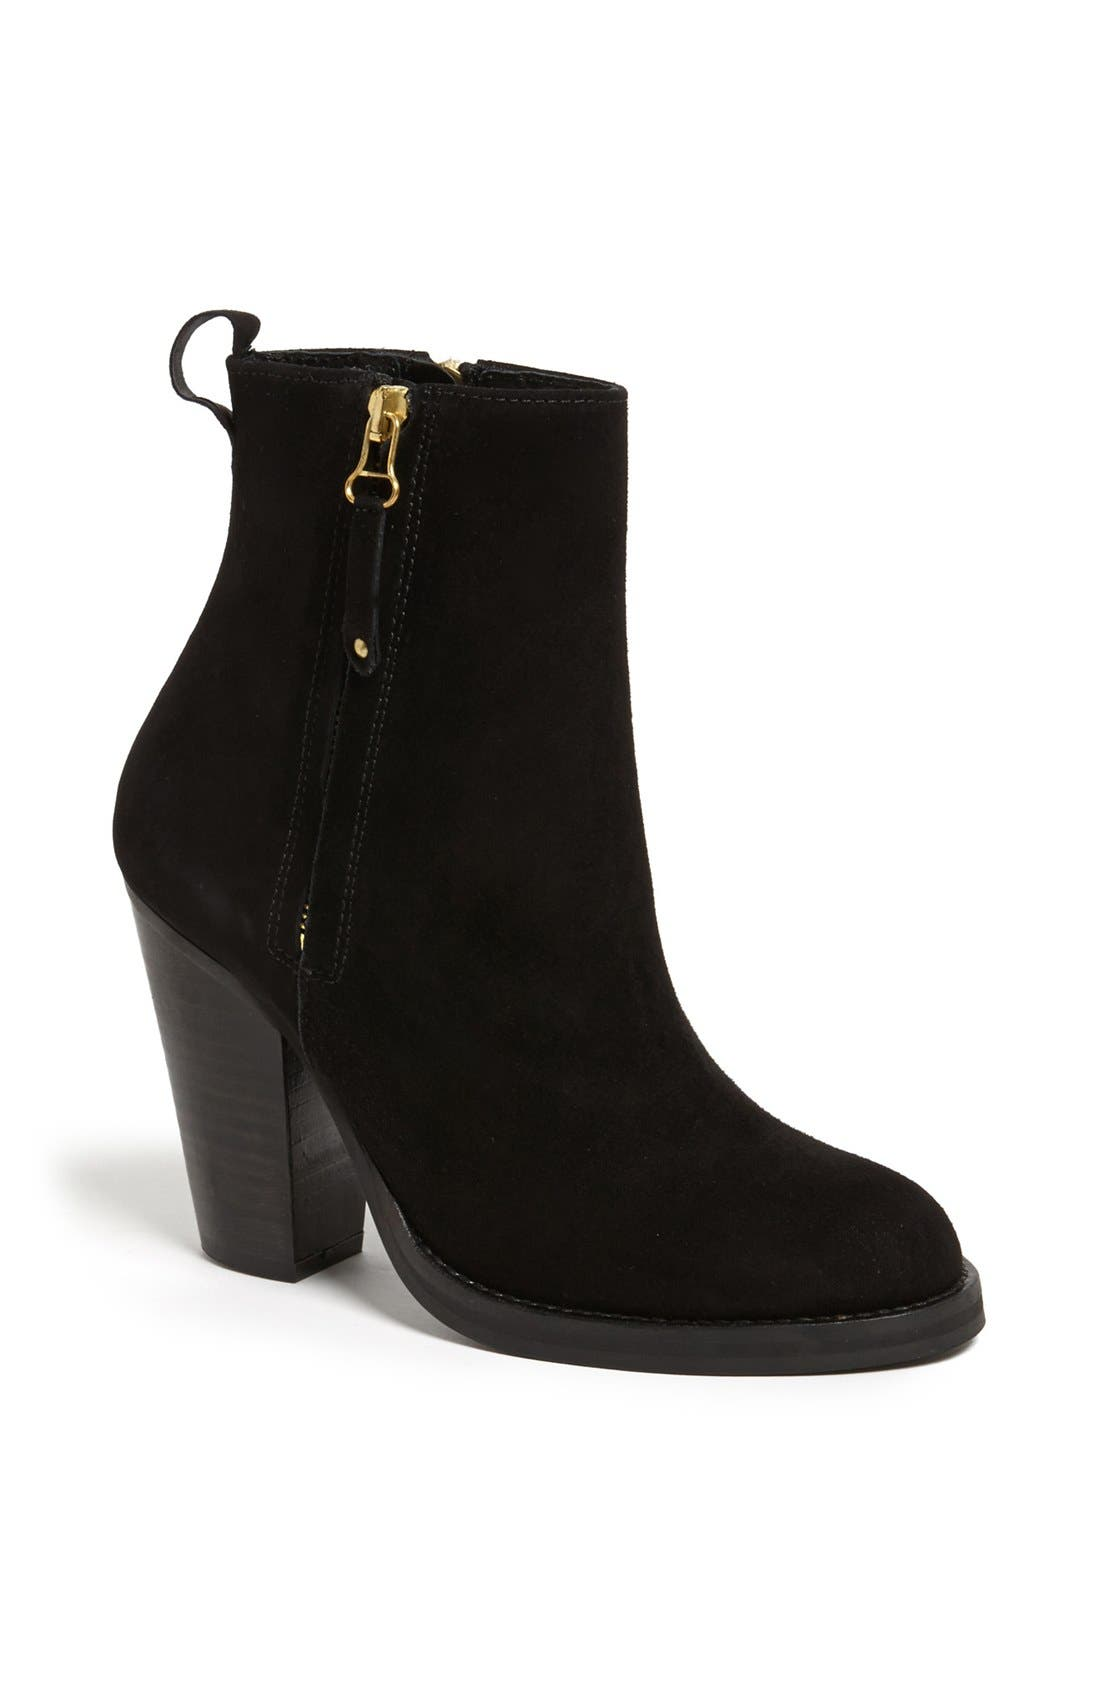 Main Image - Topshop 'Angel' Suede Boot